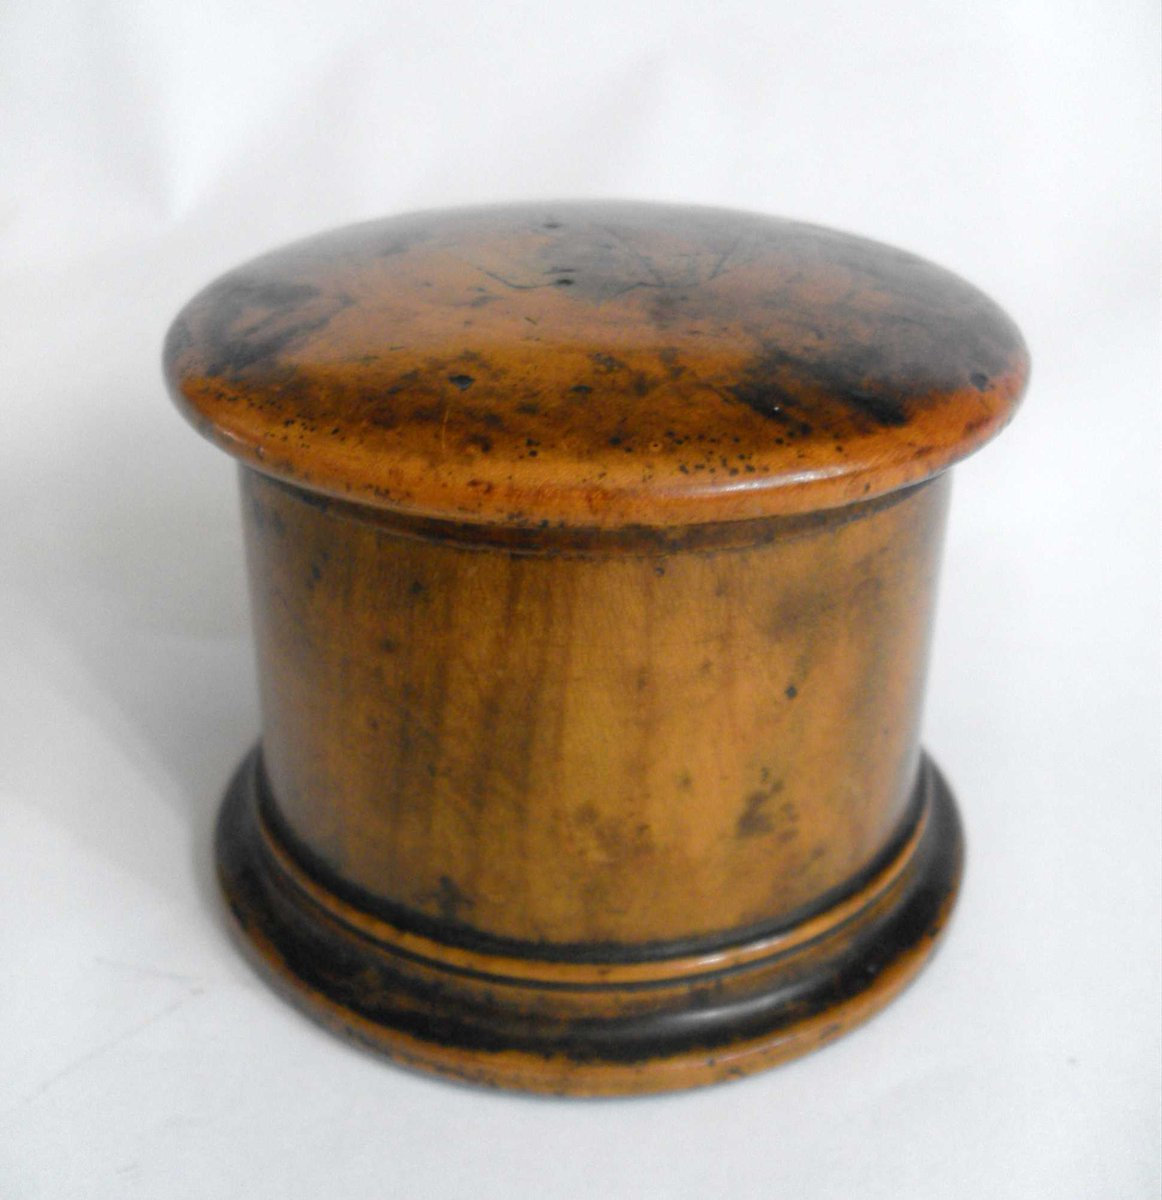 ... Offers considered *Free UK Shipping *#InspectAndCollect  http://carterscollectablesuk.co.uk/Turned-wood-box-and-cover … - CartersCollectablesUK: Antique, Vintage Etc Things On Twitter